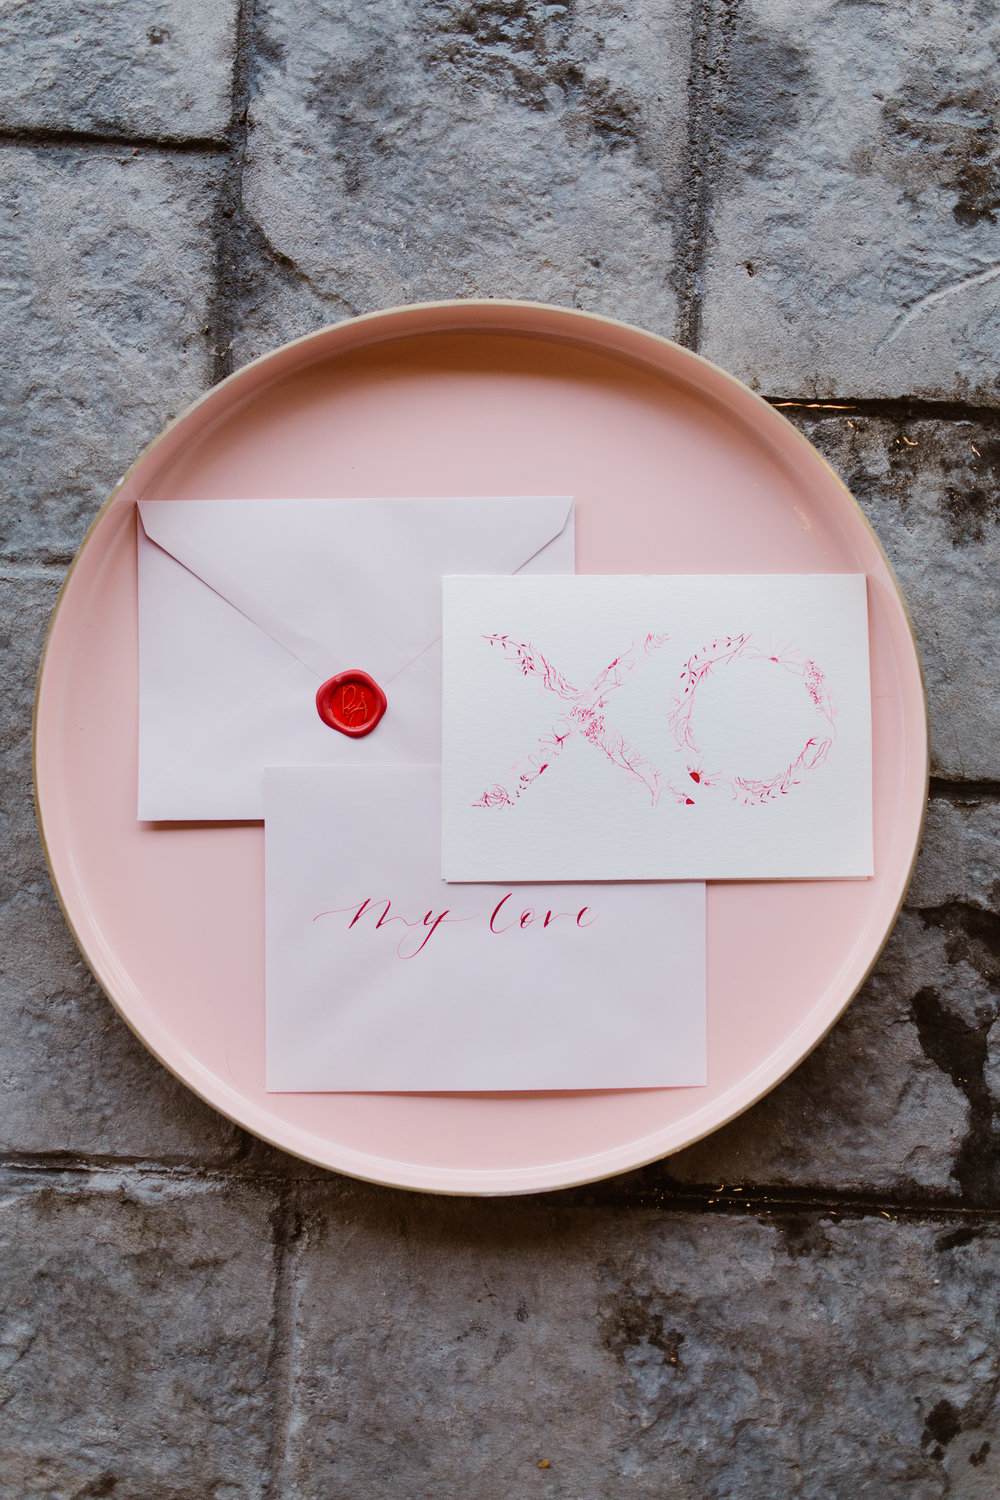 The amazingly talented  Brooke Averill  created stunning love notes for our couple. These details added the perfect romantic element for Valentine's Day.